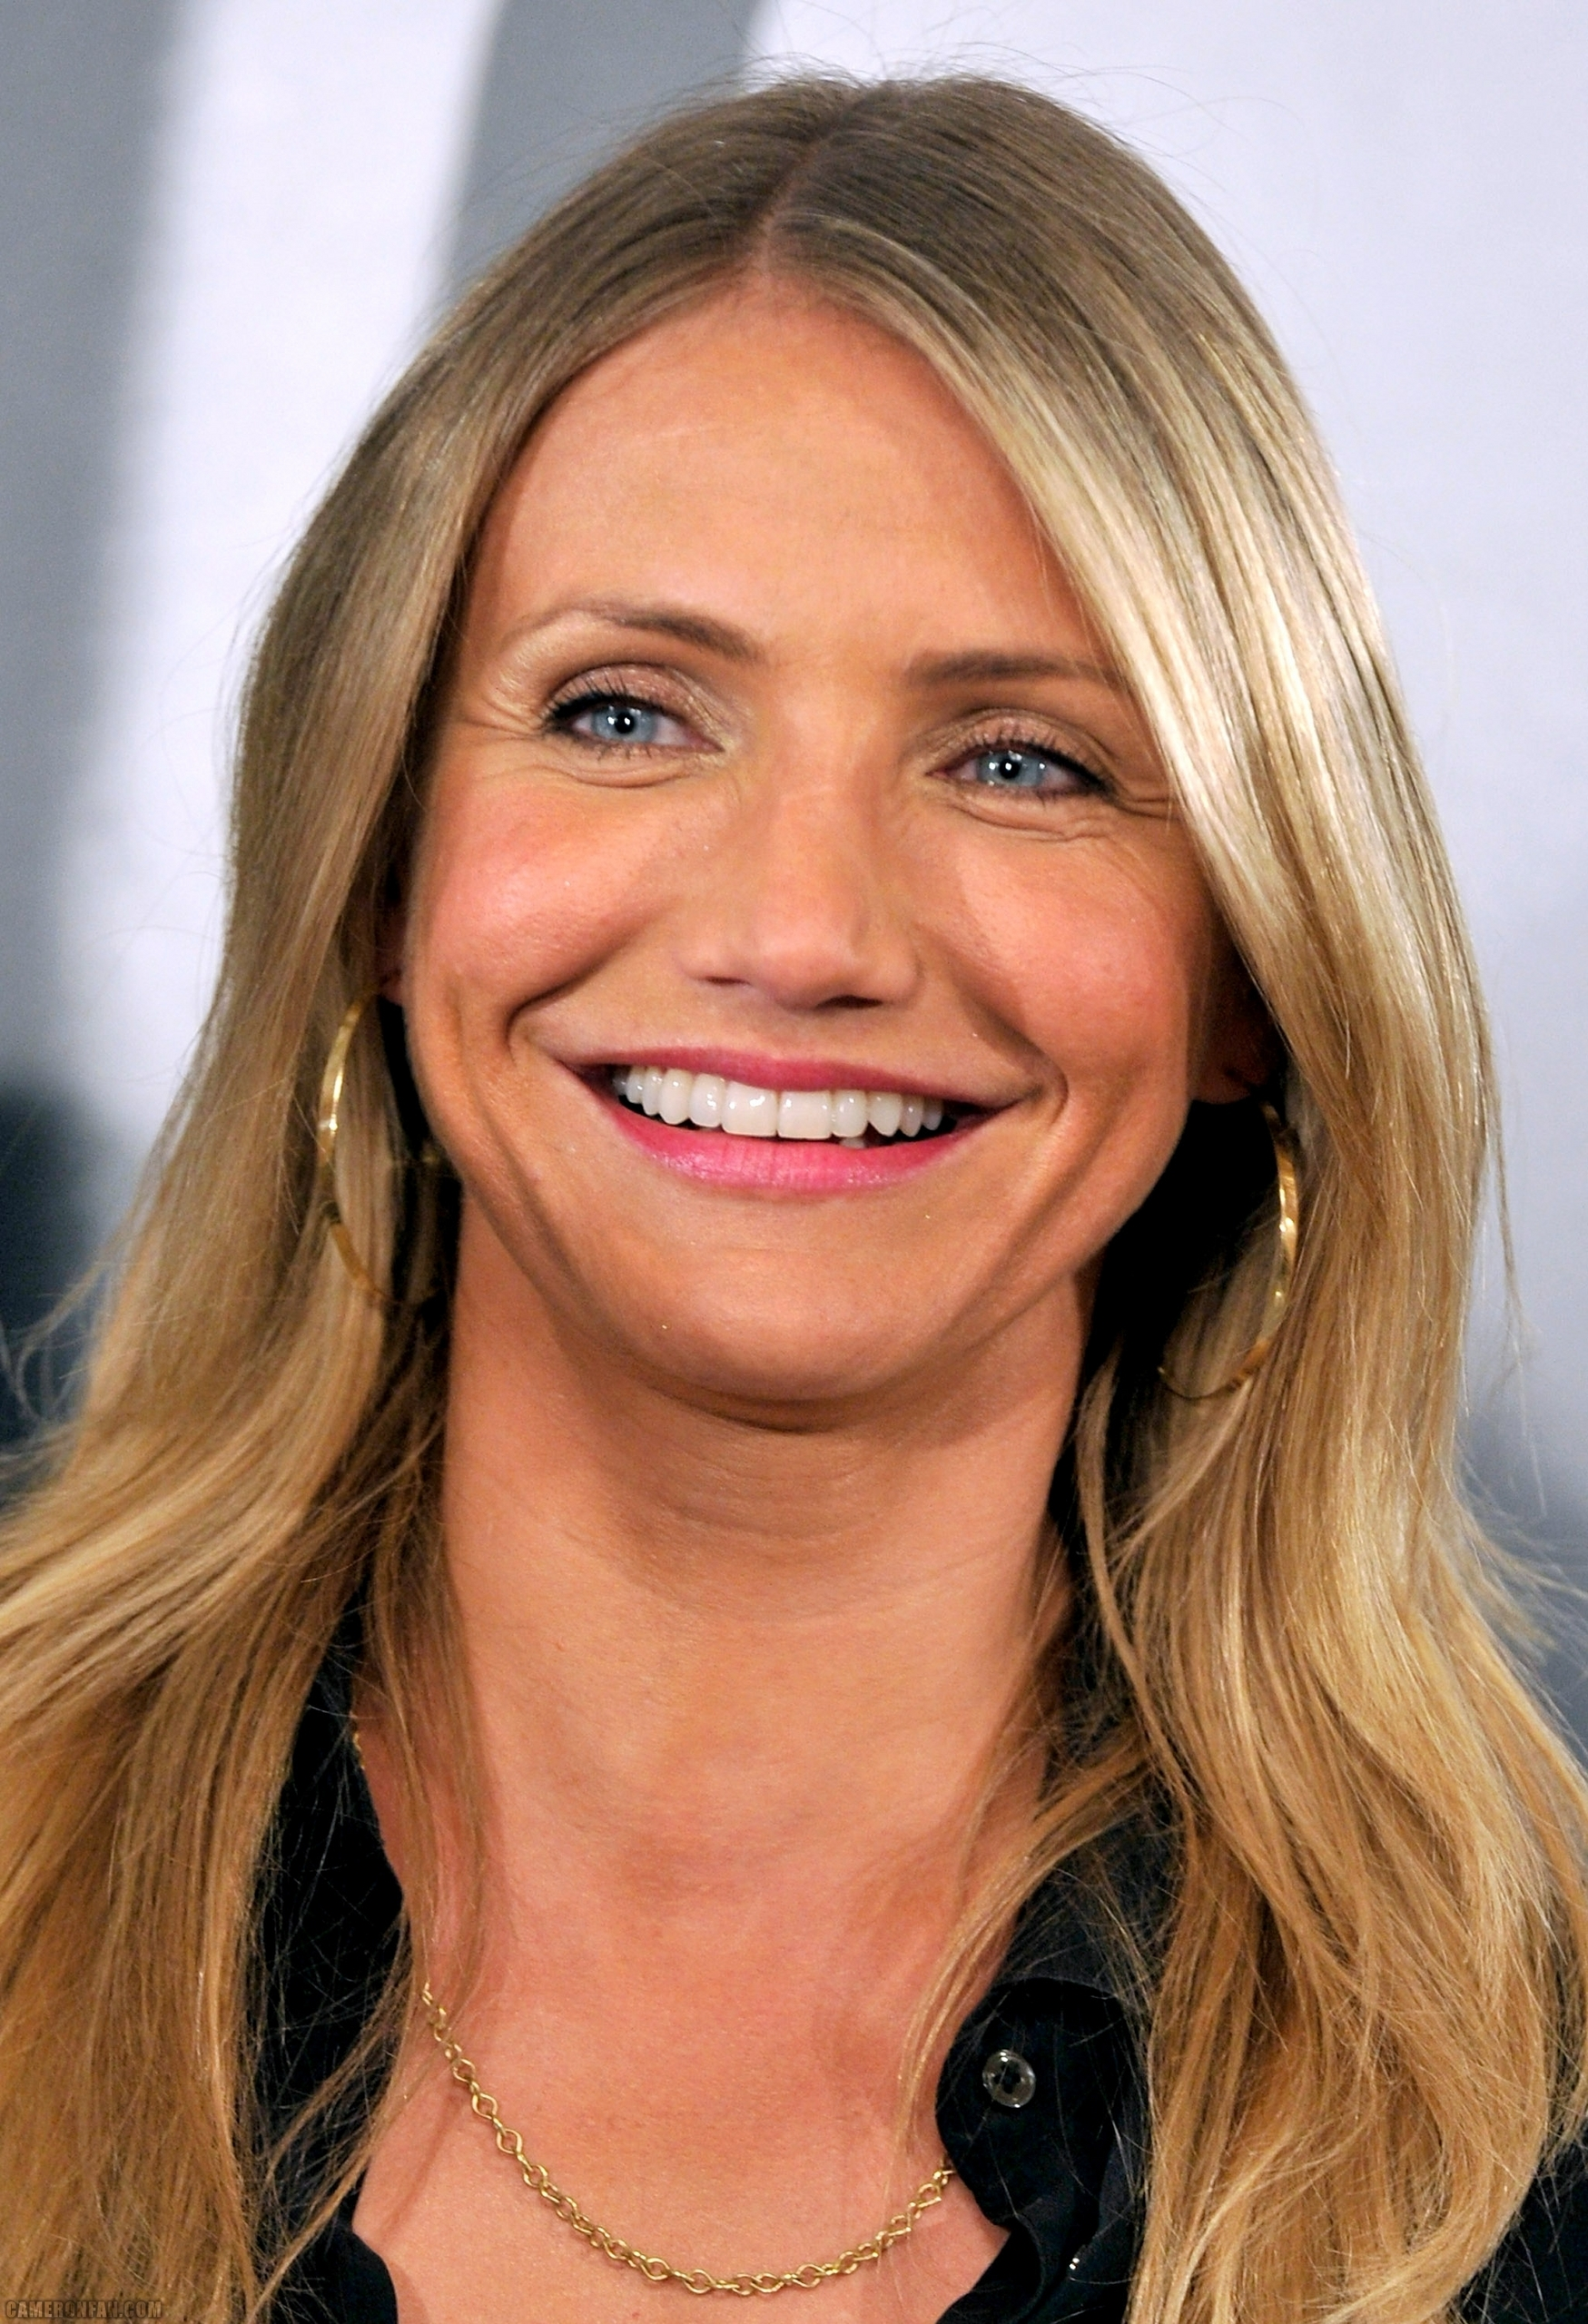 Right from the oven (news) – Latest Trend FashionCameron Diaz Agent